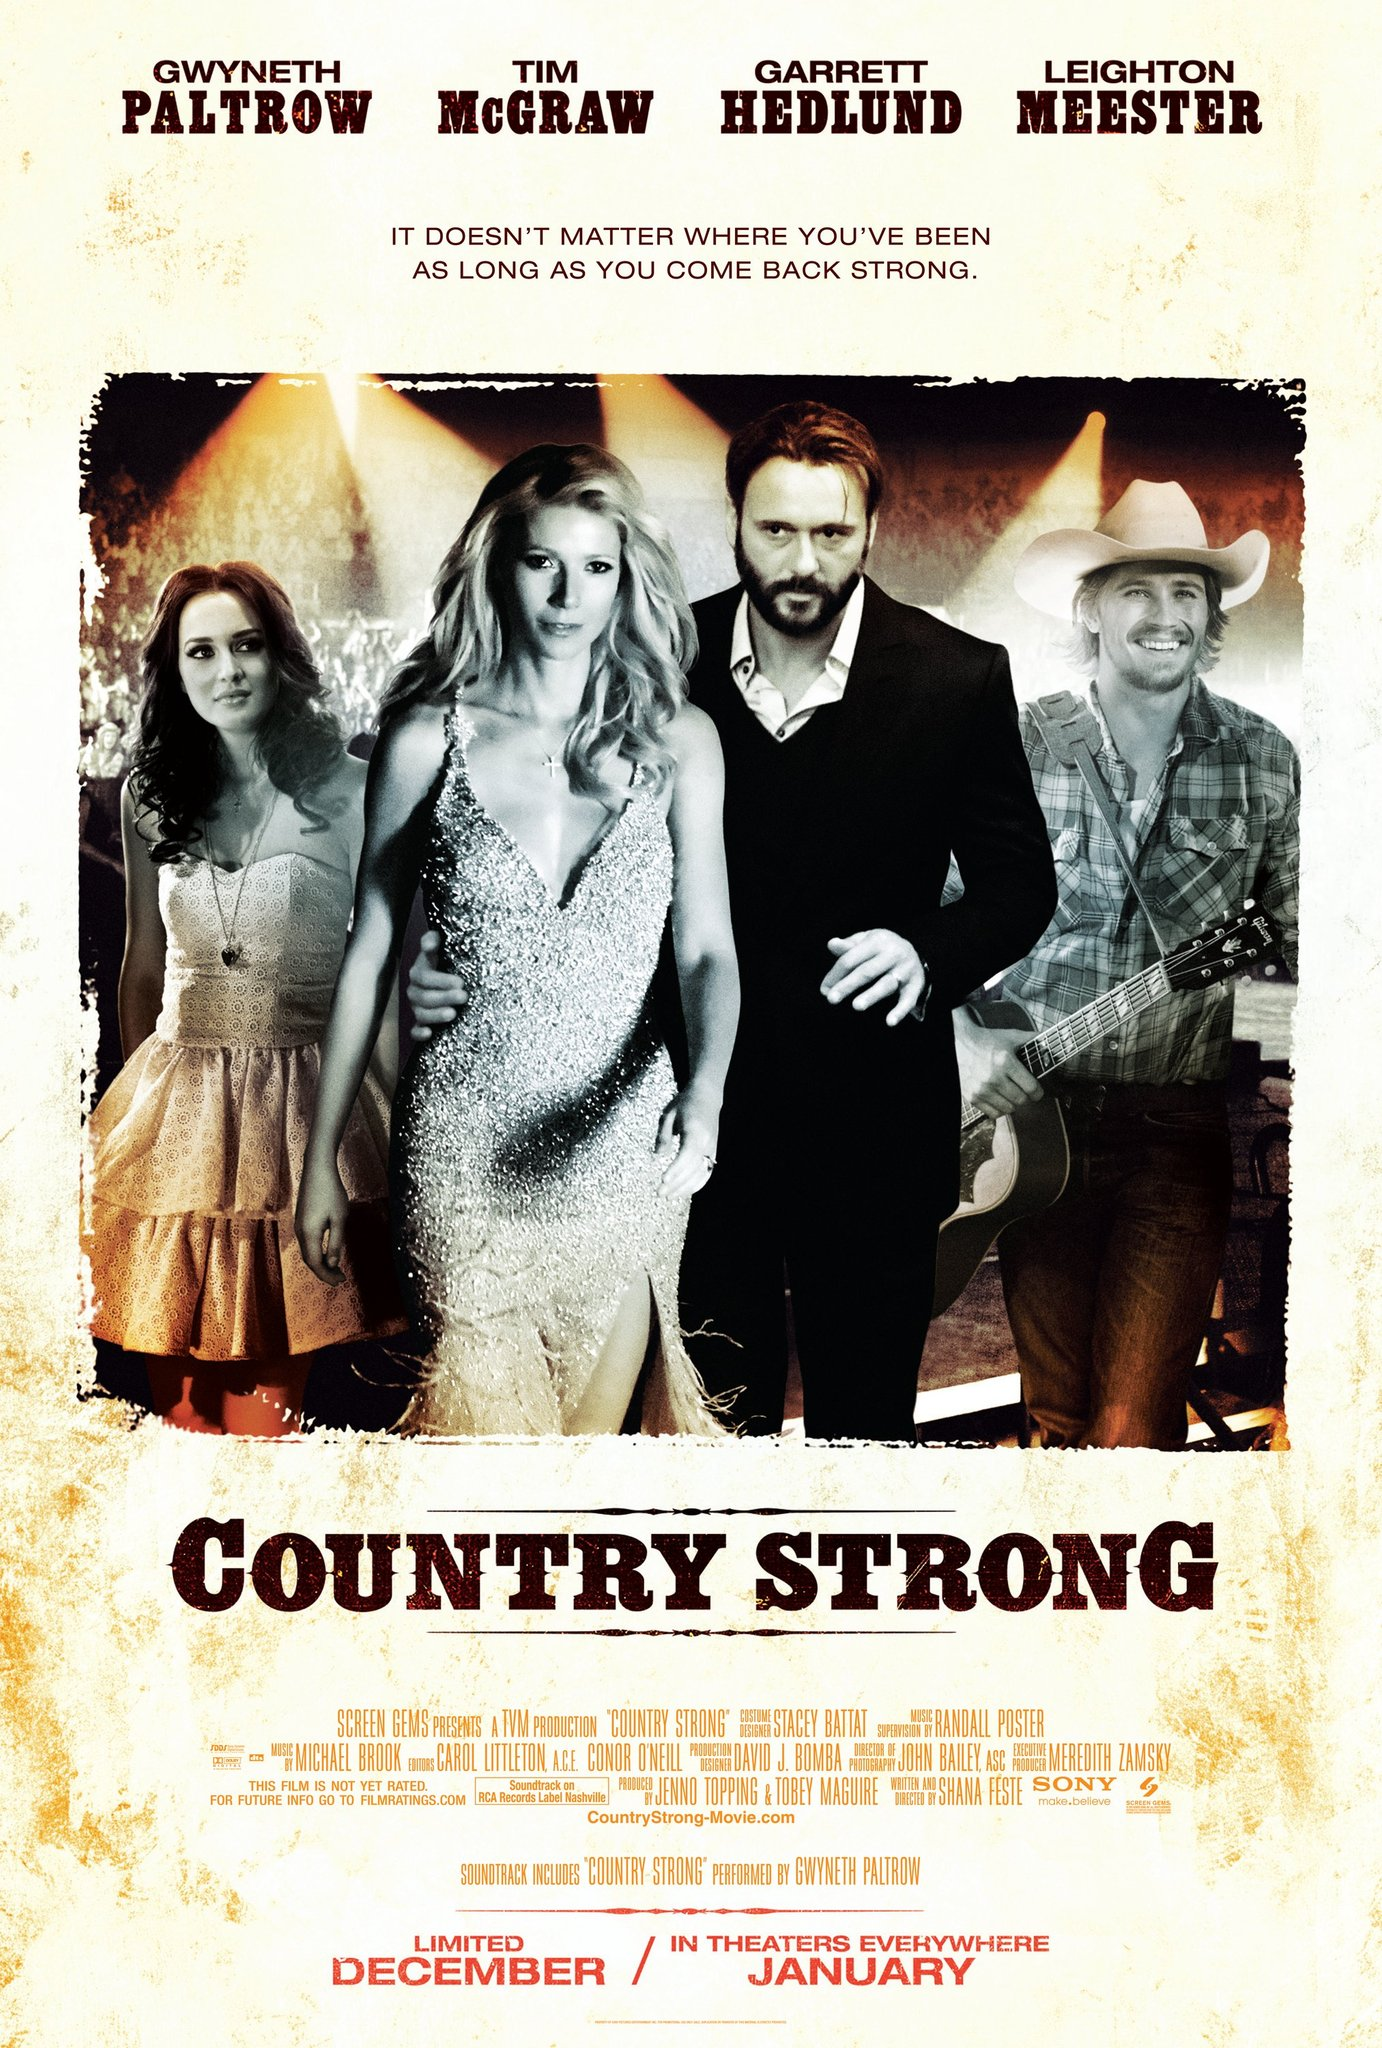 Gwyneth Paltrow to release Country Strong single picture